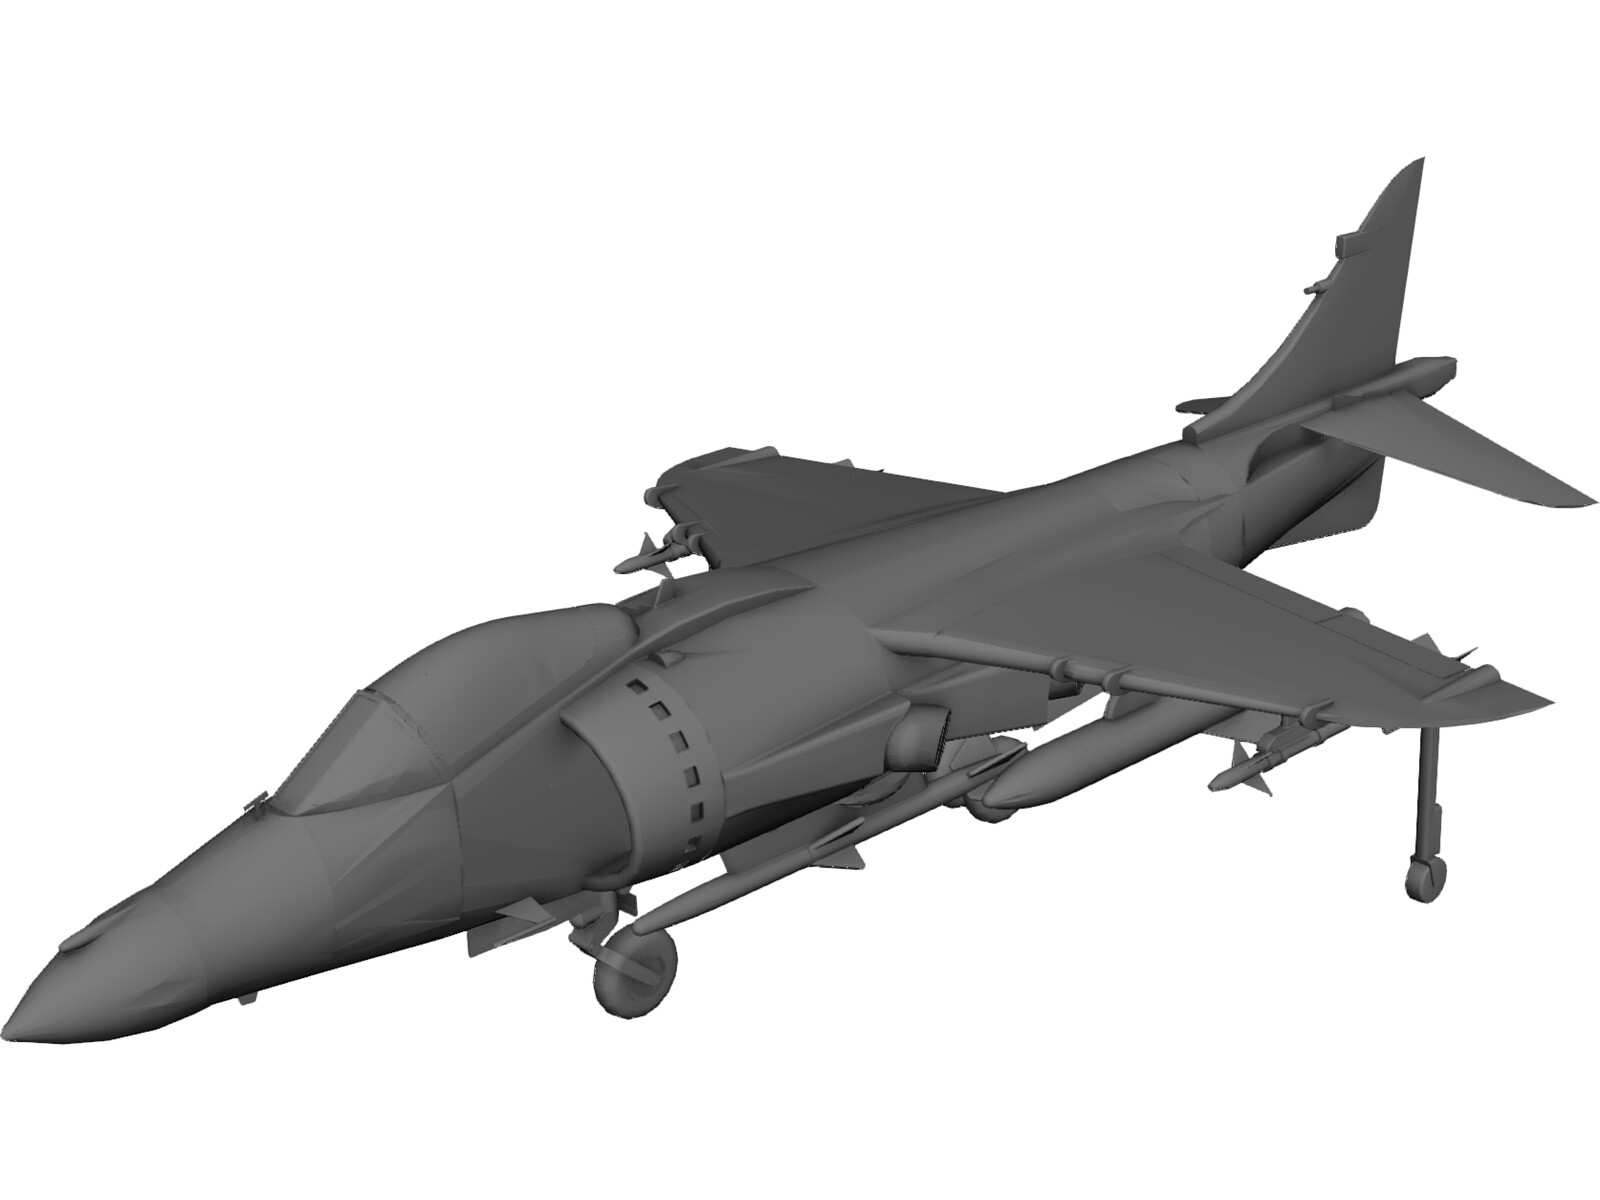 AV-8B Harrier II 3D CAD Model